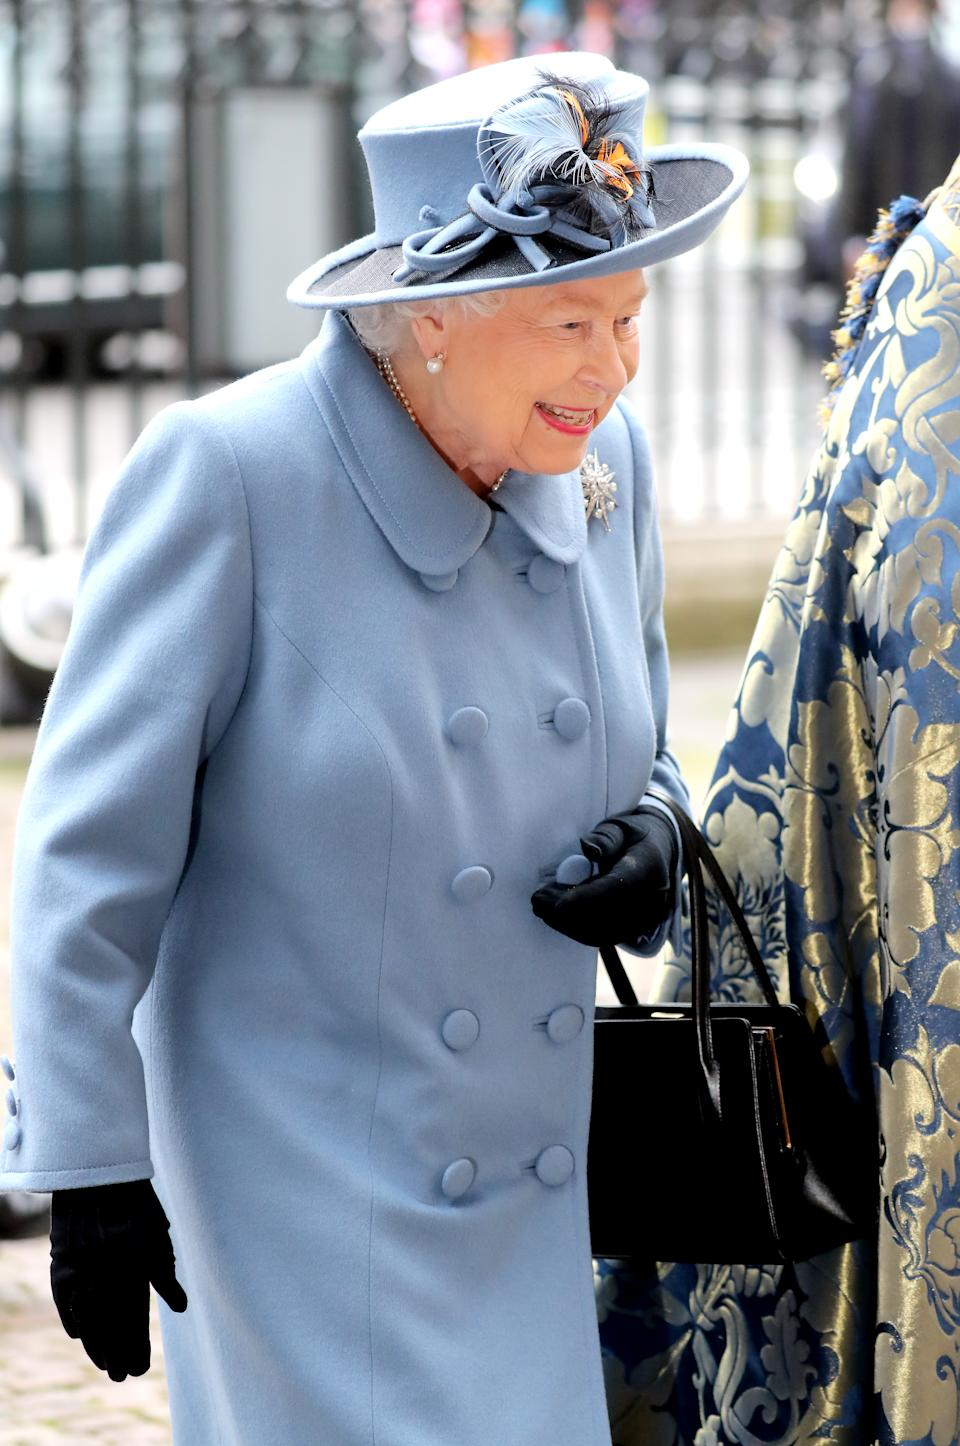 LONDON, ENGLAND - MARCH 09: Queen Elizabeth II attends the Commonwealth Day Service 2020 at Westminster Abbey on March 09, 2020 in London, England. The Commonwealth represents 2.4 billion people and 54 countries, working in collaboration towards shared economic, environmental, social and democratic goals. (Photo by Chris Jackson/Getty Images)